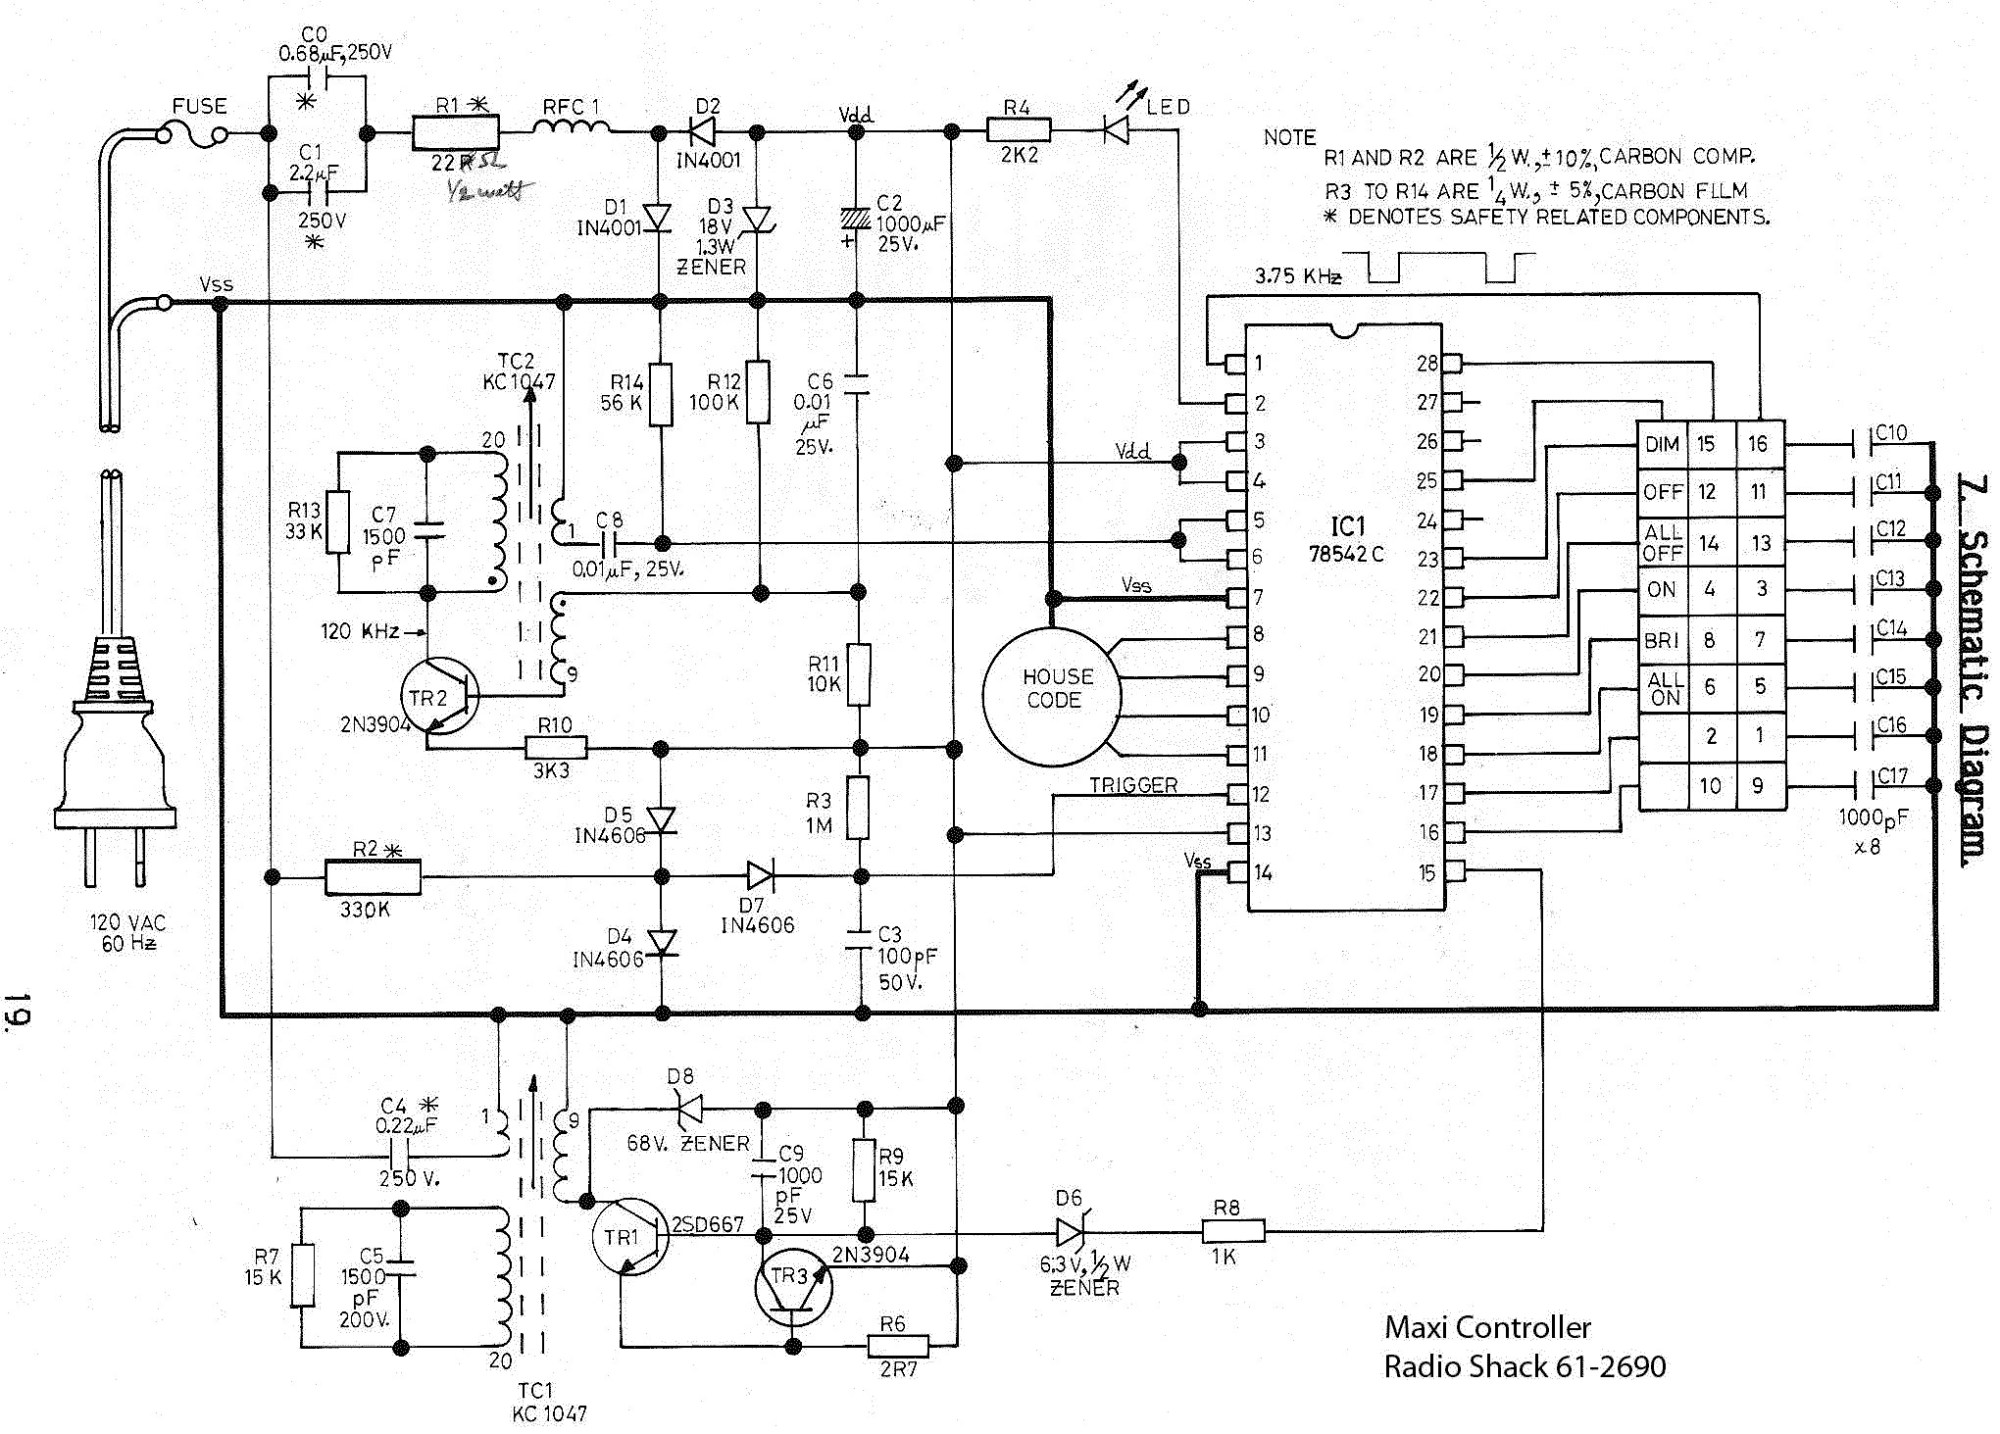 hight resolution of relay wire diagram for eaton wiring diagram toolboxeaton wiring diagrams wiring diagram today relay wire diagram